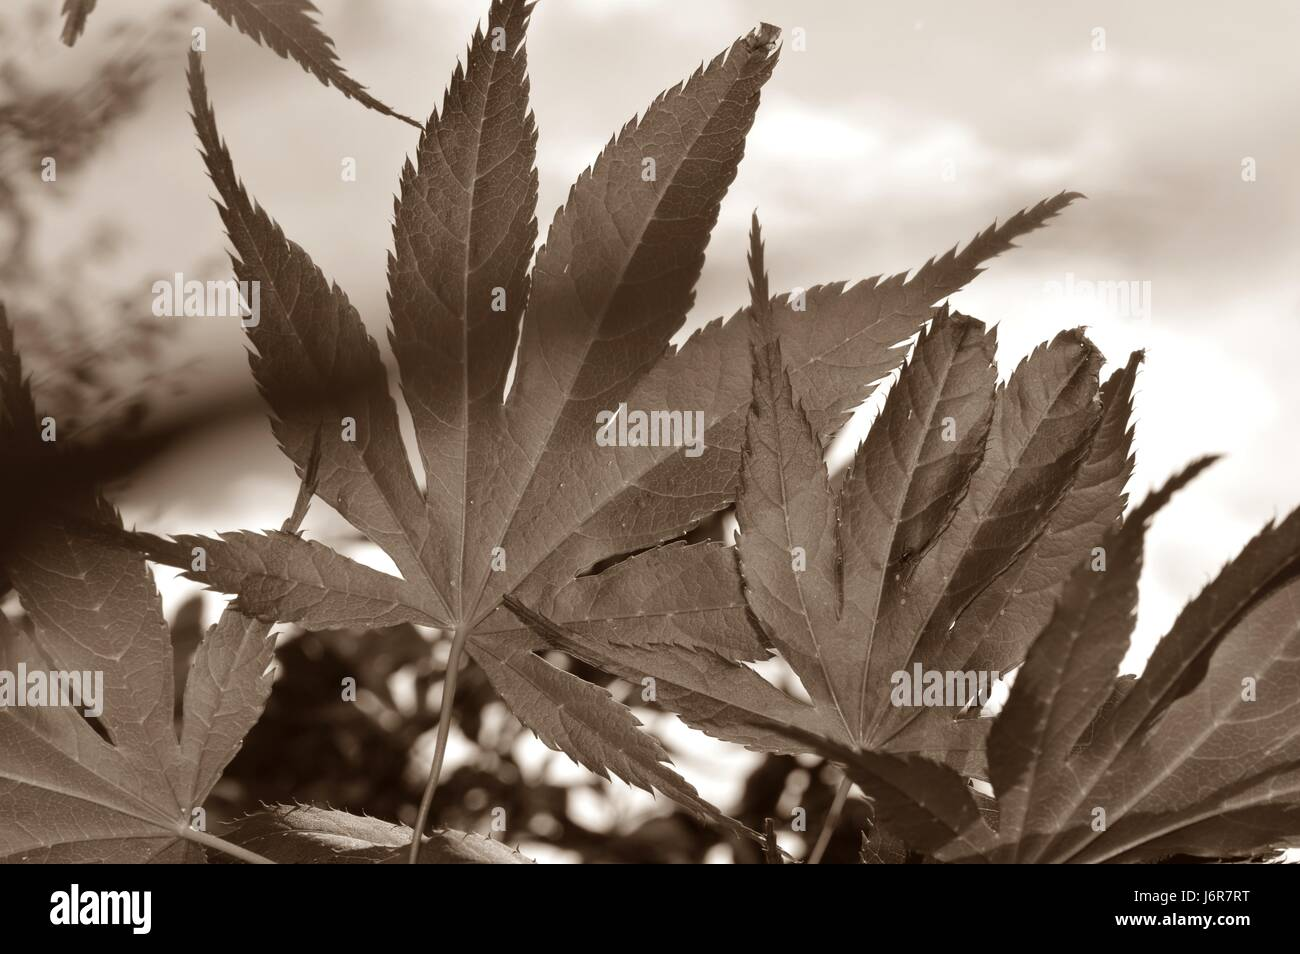 Japanese Maple - Stock Image